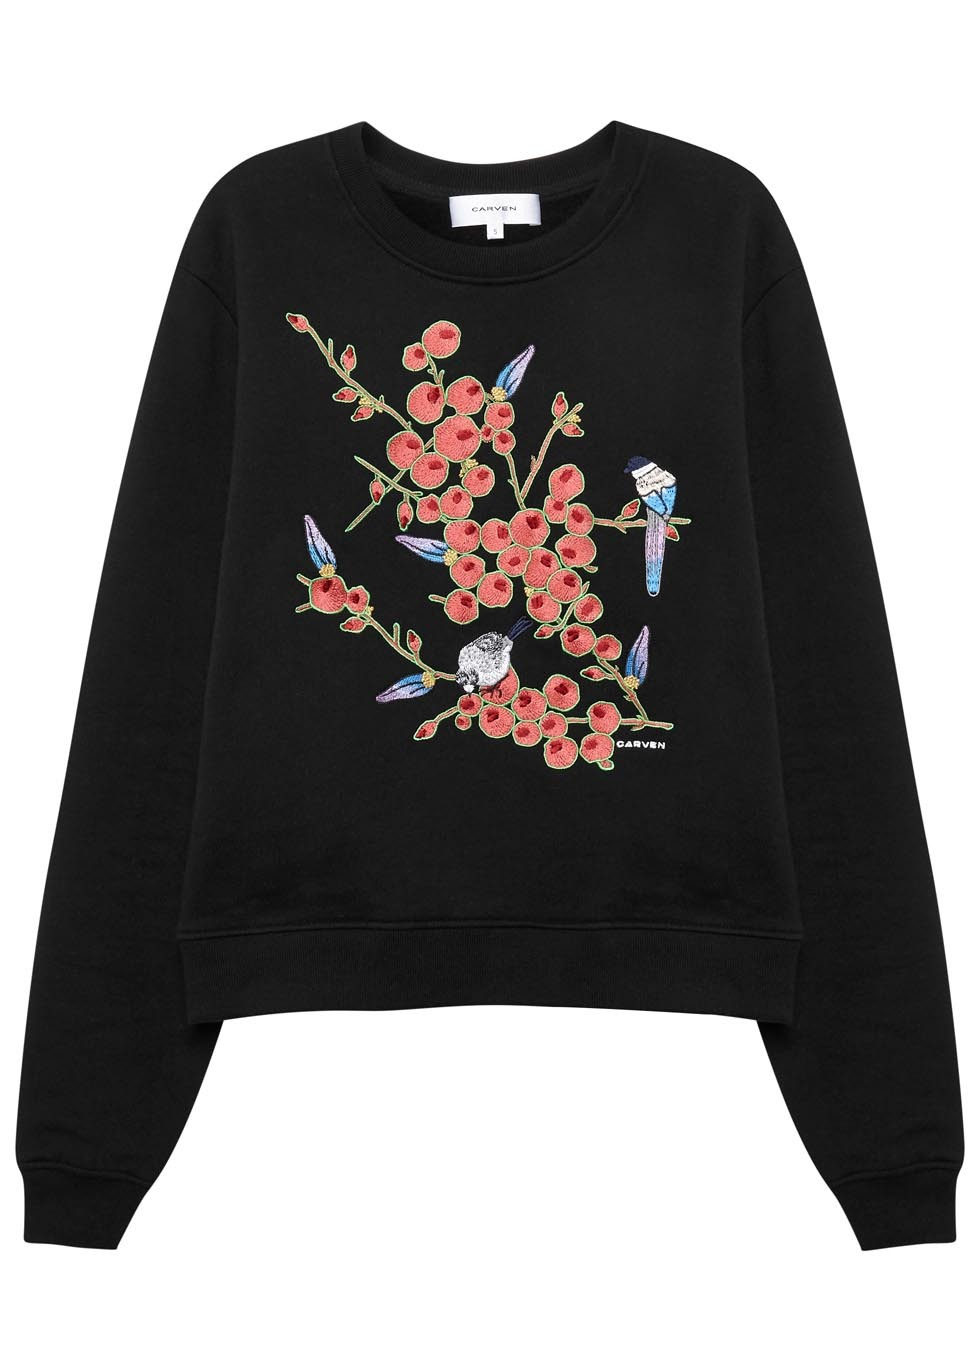 Black Embroidered Cotton Sweatshirt - style: sweat top; secondary colour: coral; predominant colour: black; occasions: casual; length: standard; fibres: cotton - 100%; fit: loose; neckline: crew; sleeve length: long sleeve; sleeve style: standard; pattern type: fabric; pattern: florals; texture group: jersey - stretchy/drapey; embellishment: embroidered; multicoloured: multicoloured; season: s/s 2016; wardrobe: highlight